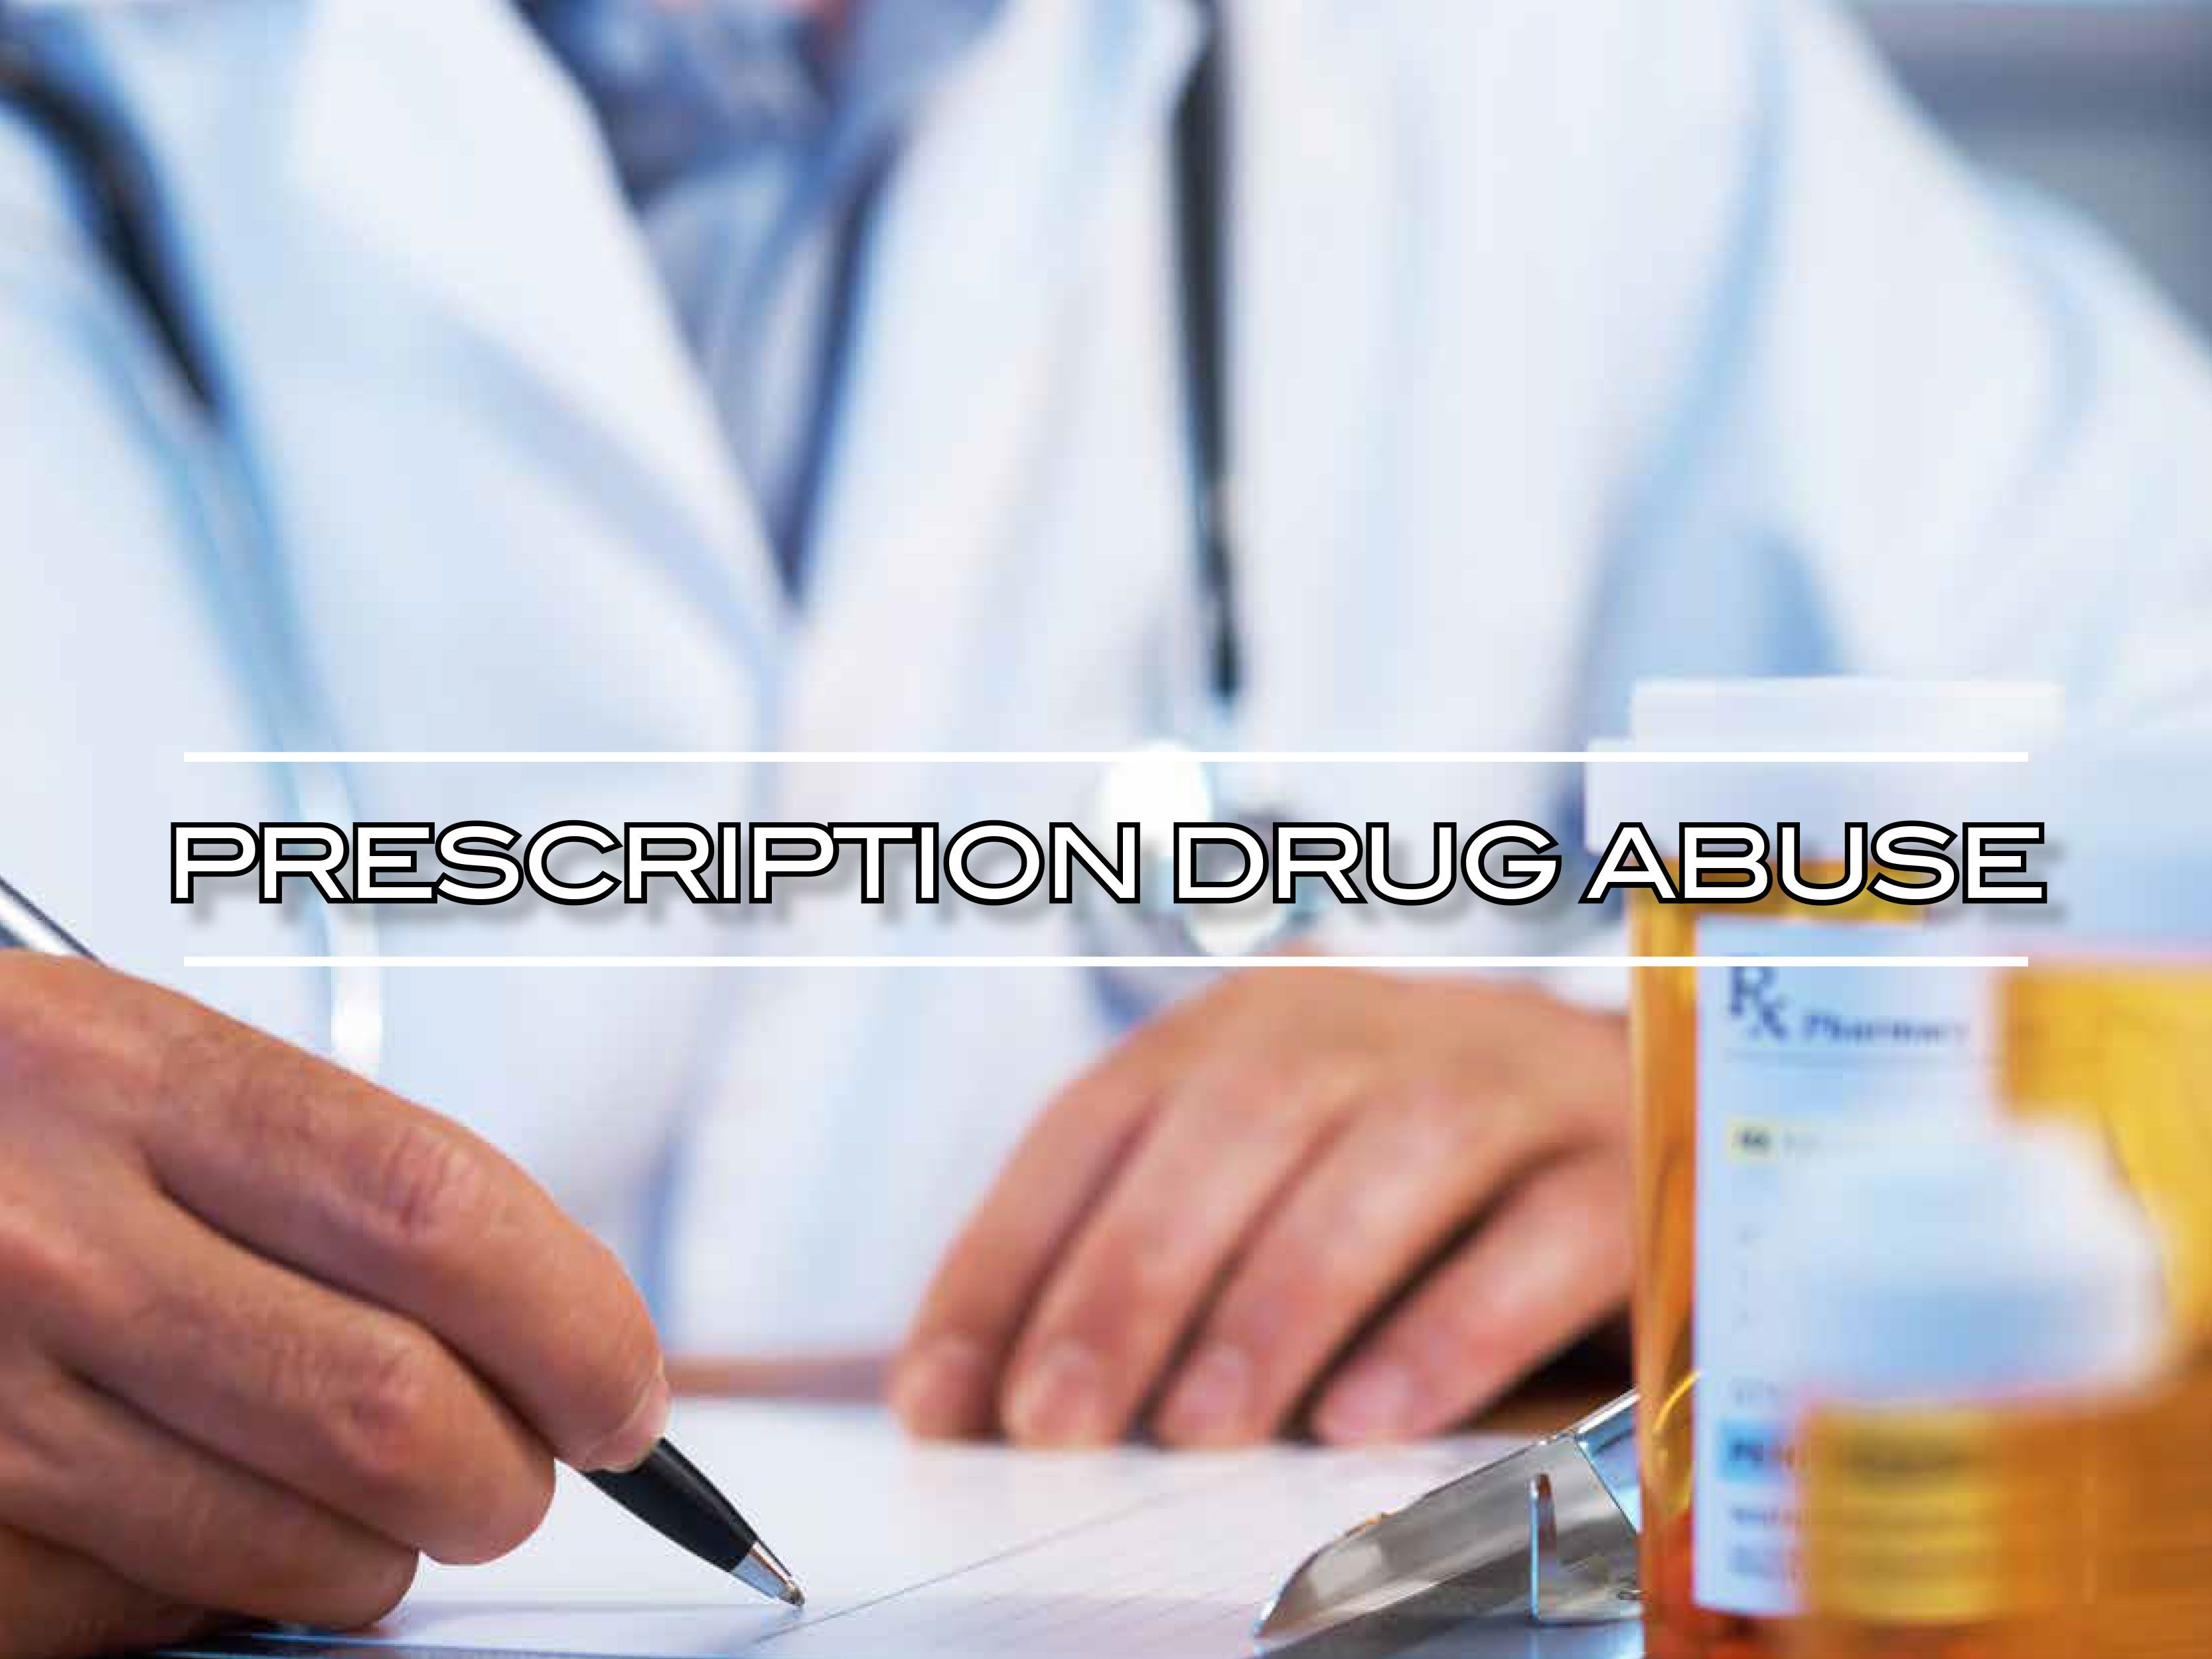 Share Or Download Free Prescription Drug Abuse Brochure Download